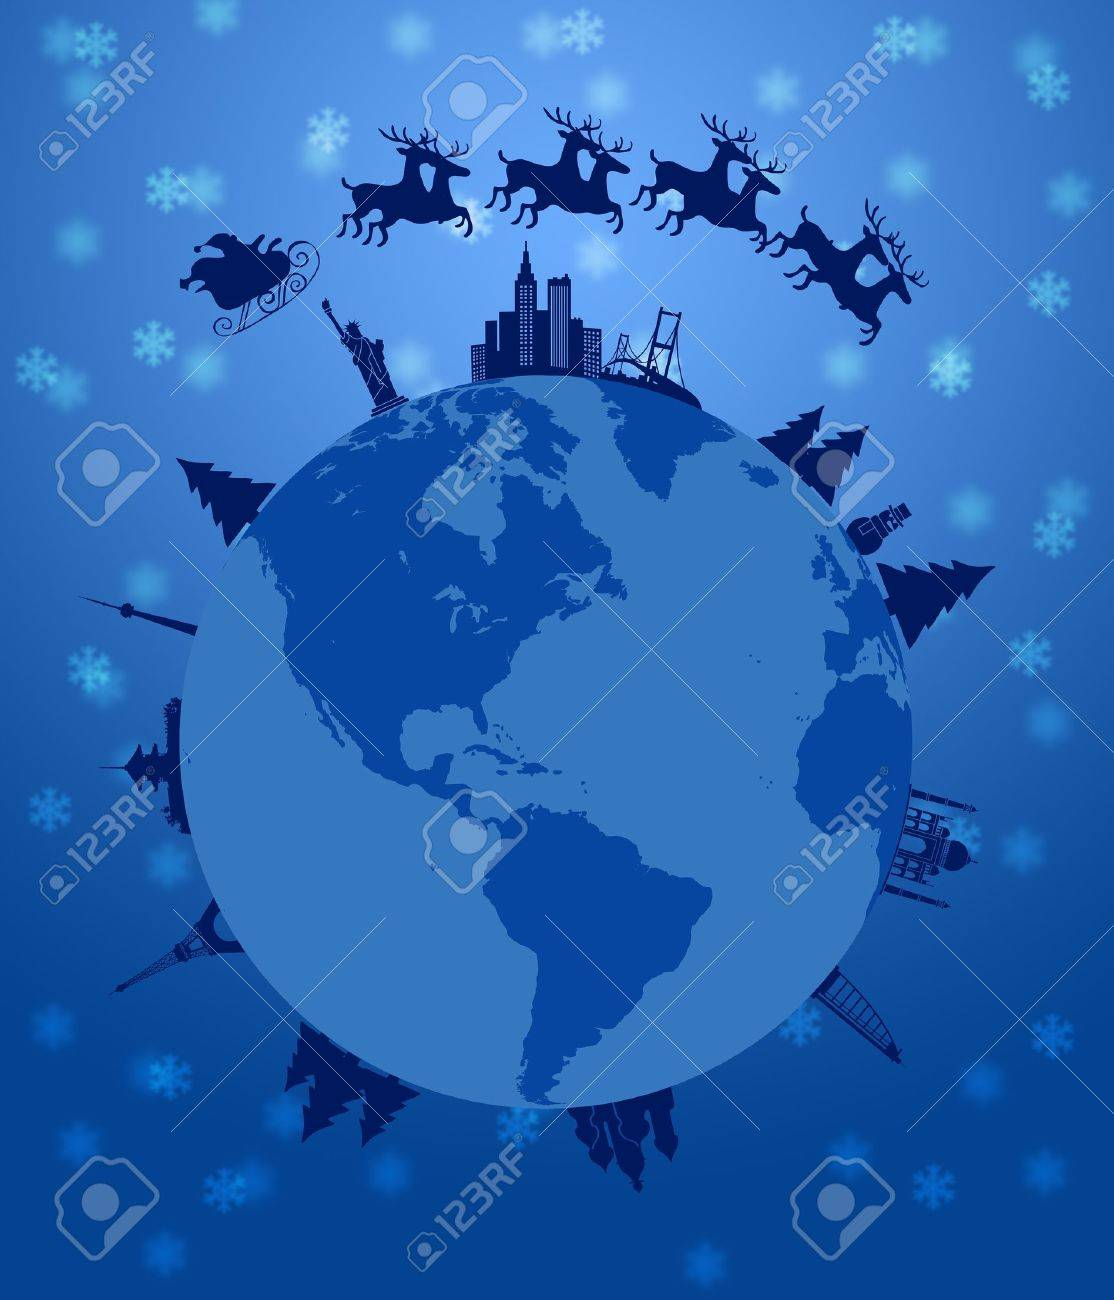 Santa Sleigh and Reindeer Flying Around the World Earth Globe Illustration Stock Illustration - 11134084